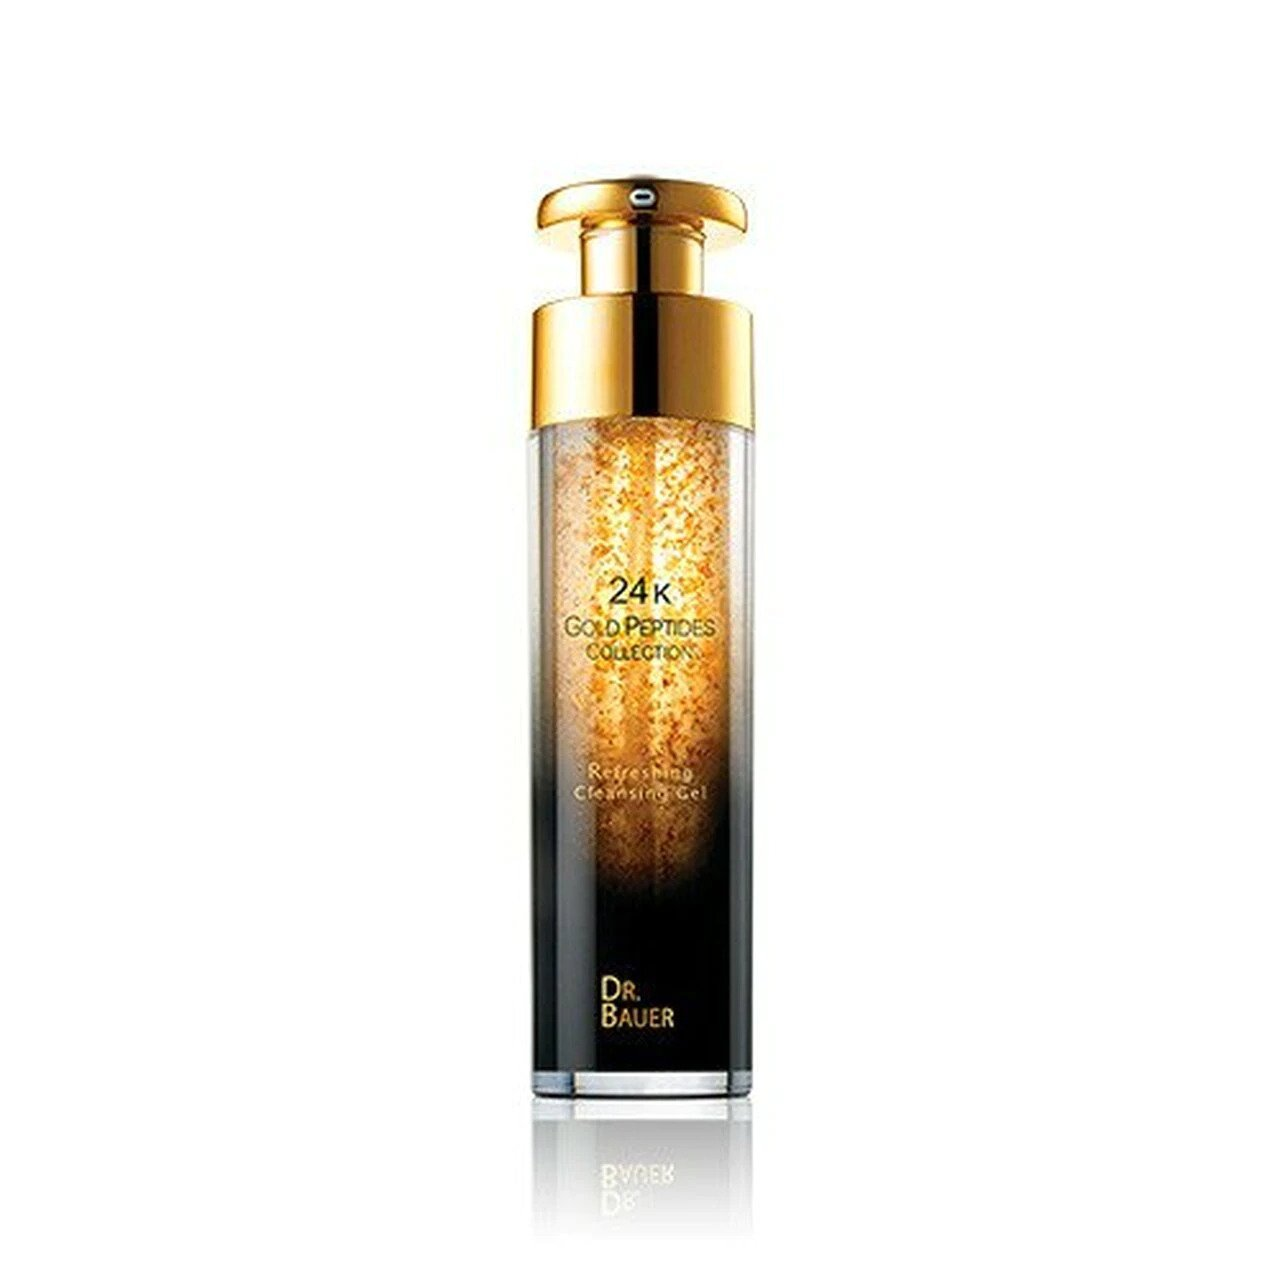 Dr. Bauer 24K Gold Peptides Collection Refreshing Cleansing Gel